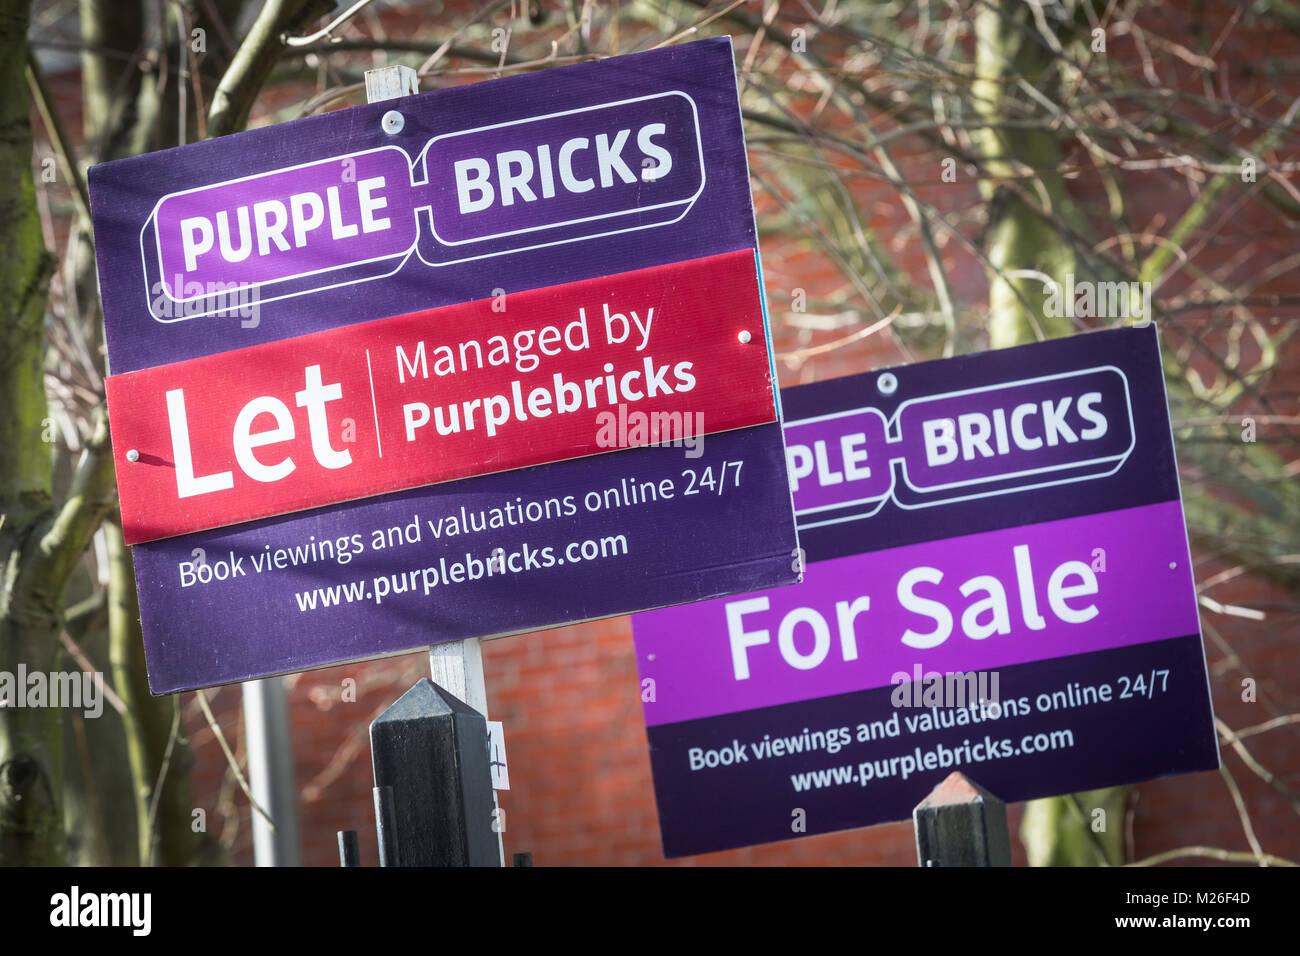 Purple Bricks property sale and to let signs - Stock Image